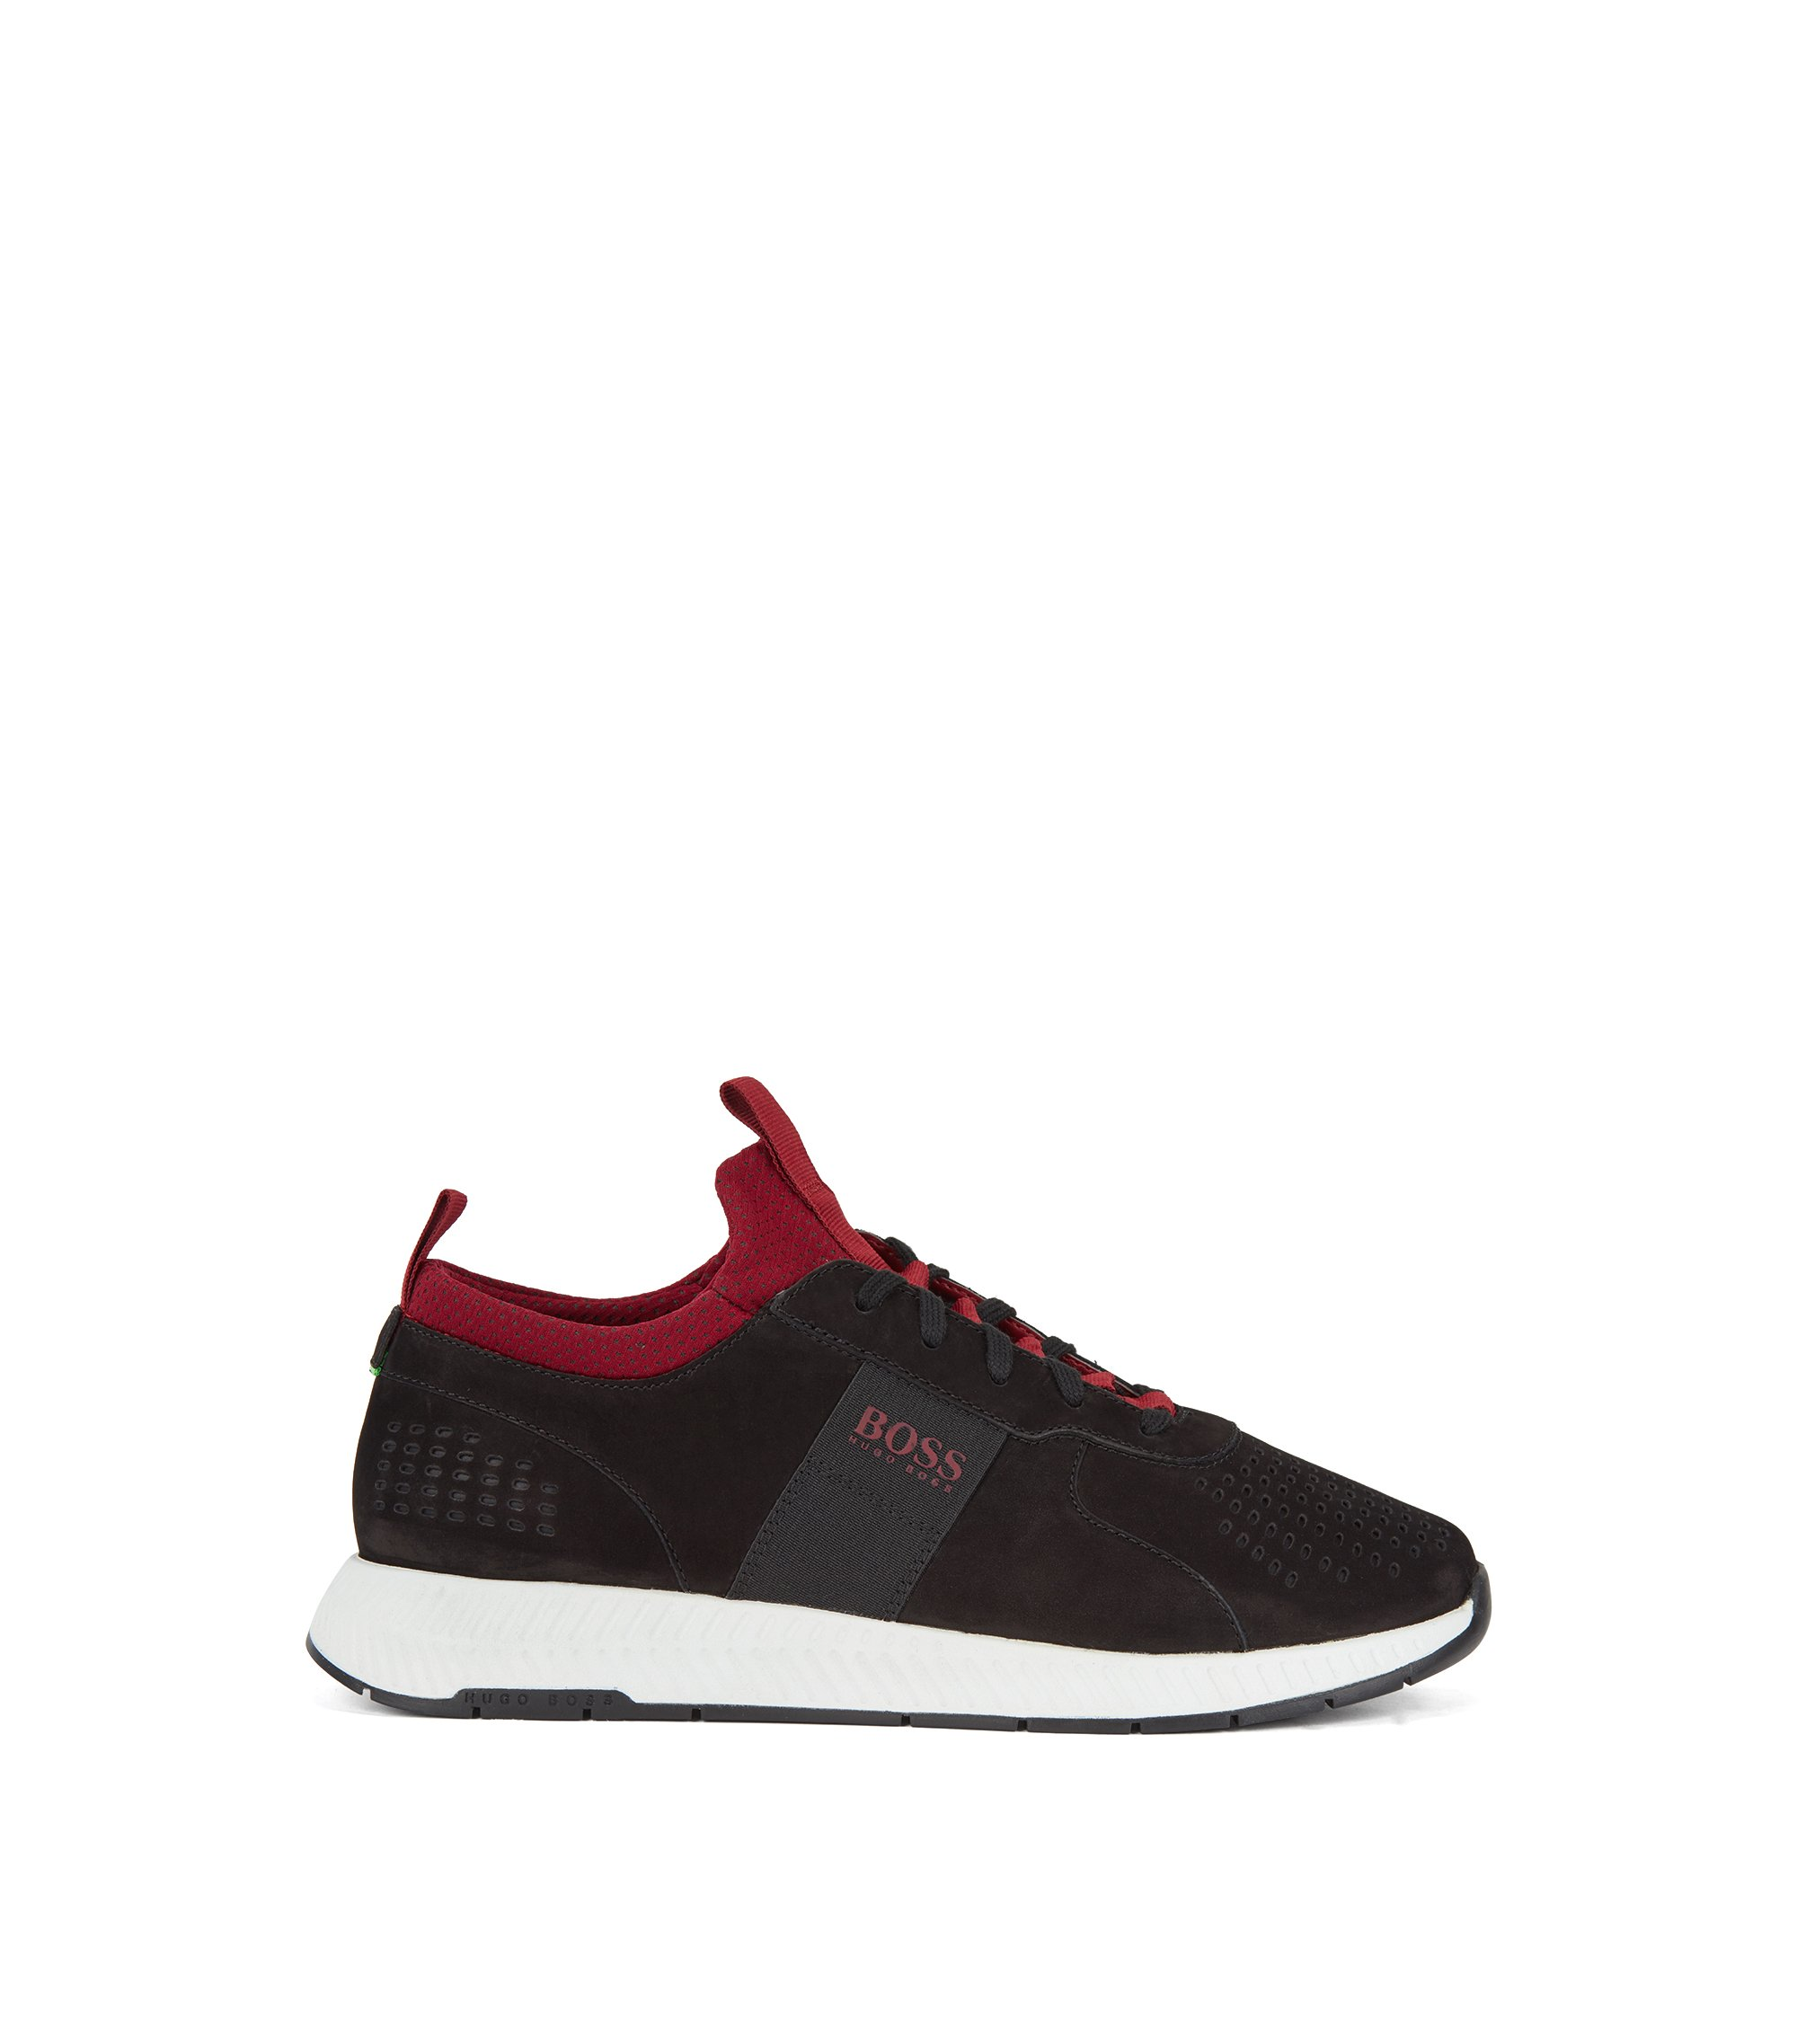 Running-inspired trainers in perforated nubuck leather, Black